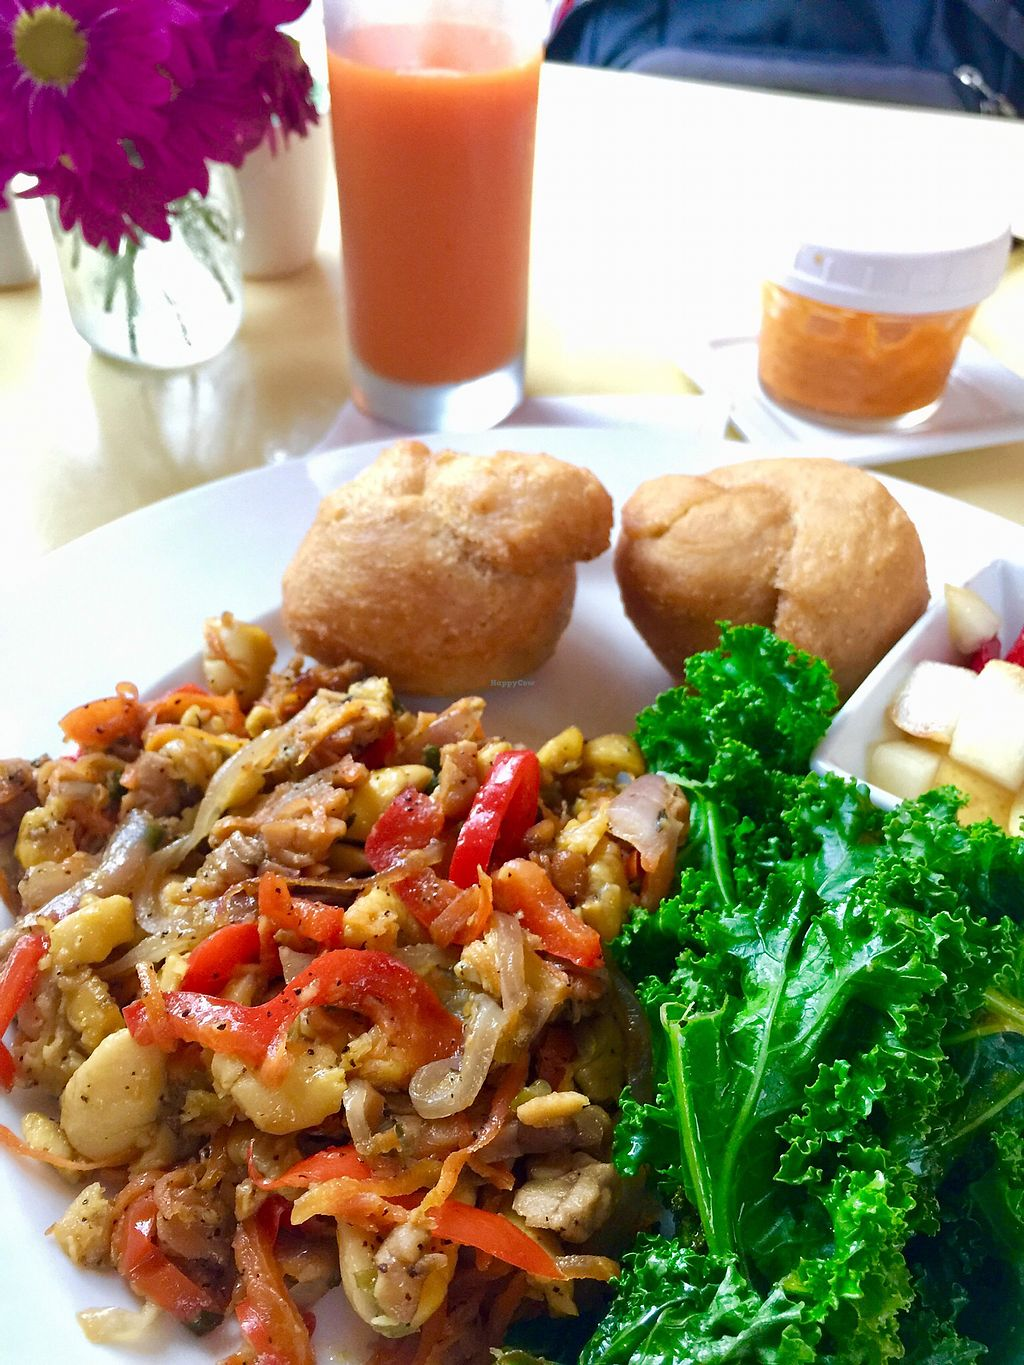 """Photo of Bread and Chocolate Vegan Bistro  by <a href=""""/members/profile/Wgoers"""">Wgoers</a> <br/>Achee scramble is unique and very tasty <br/> October 21, 2017  - <a href='/contact/abuse/image/38386/317308'>Report</a>"""